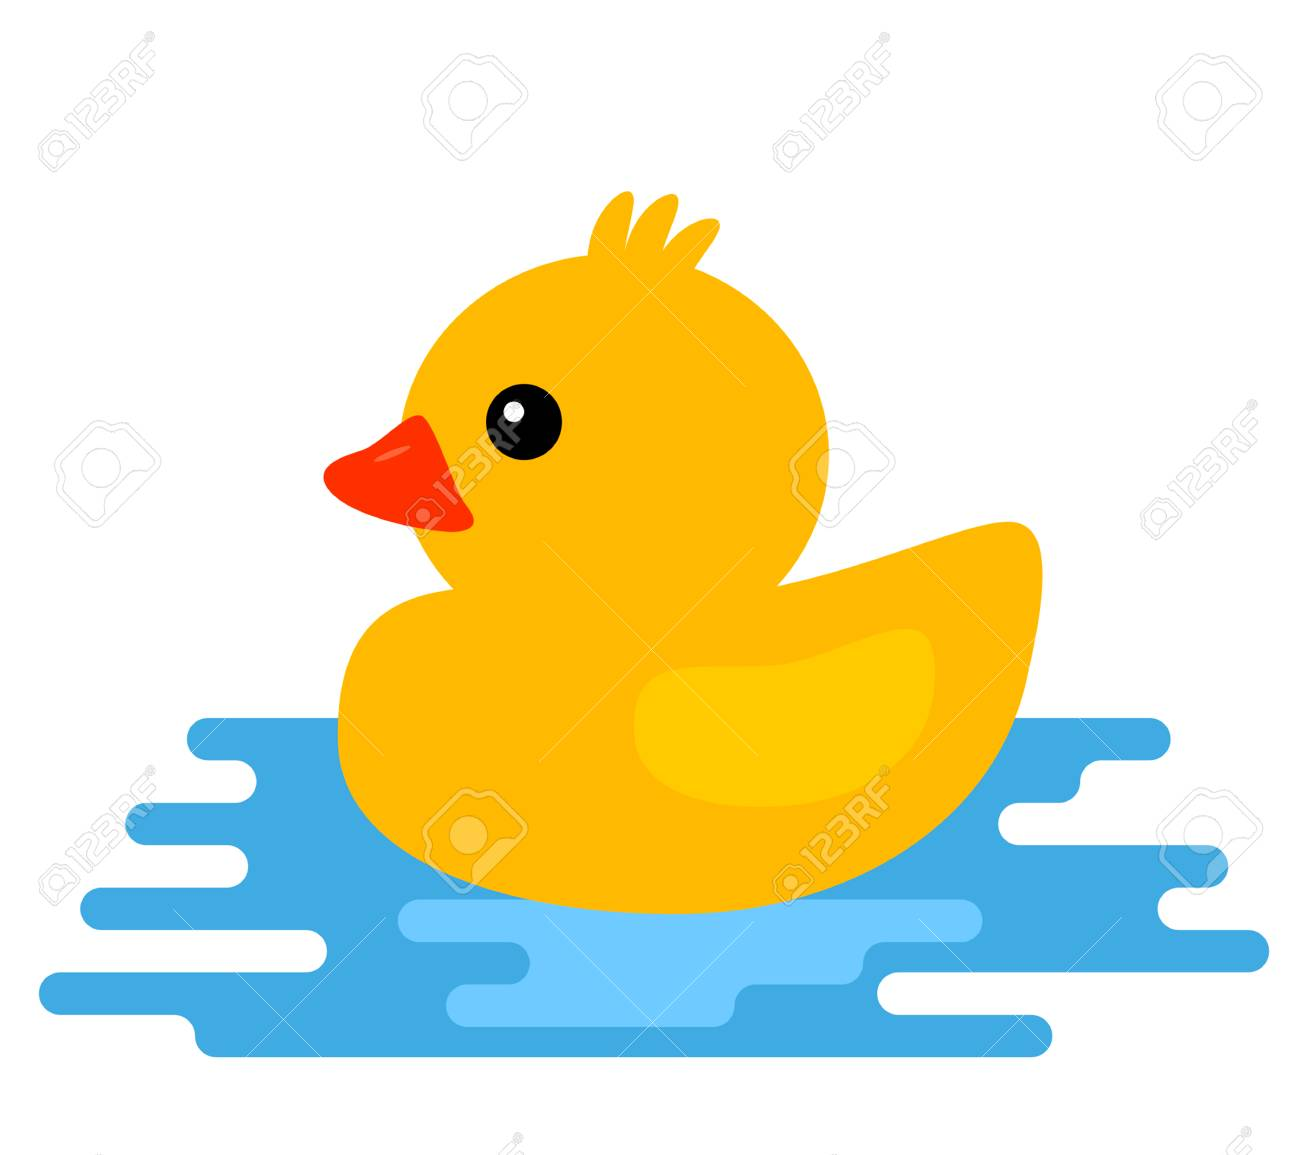 Yellow Rubber Duck Vector Illustration Of Cartoon Style, Isolated ...